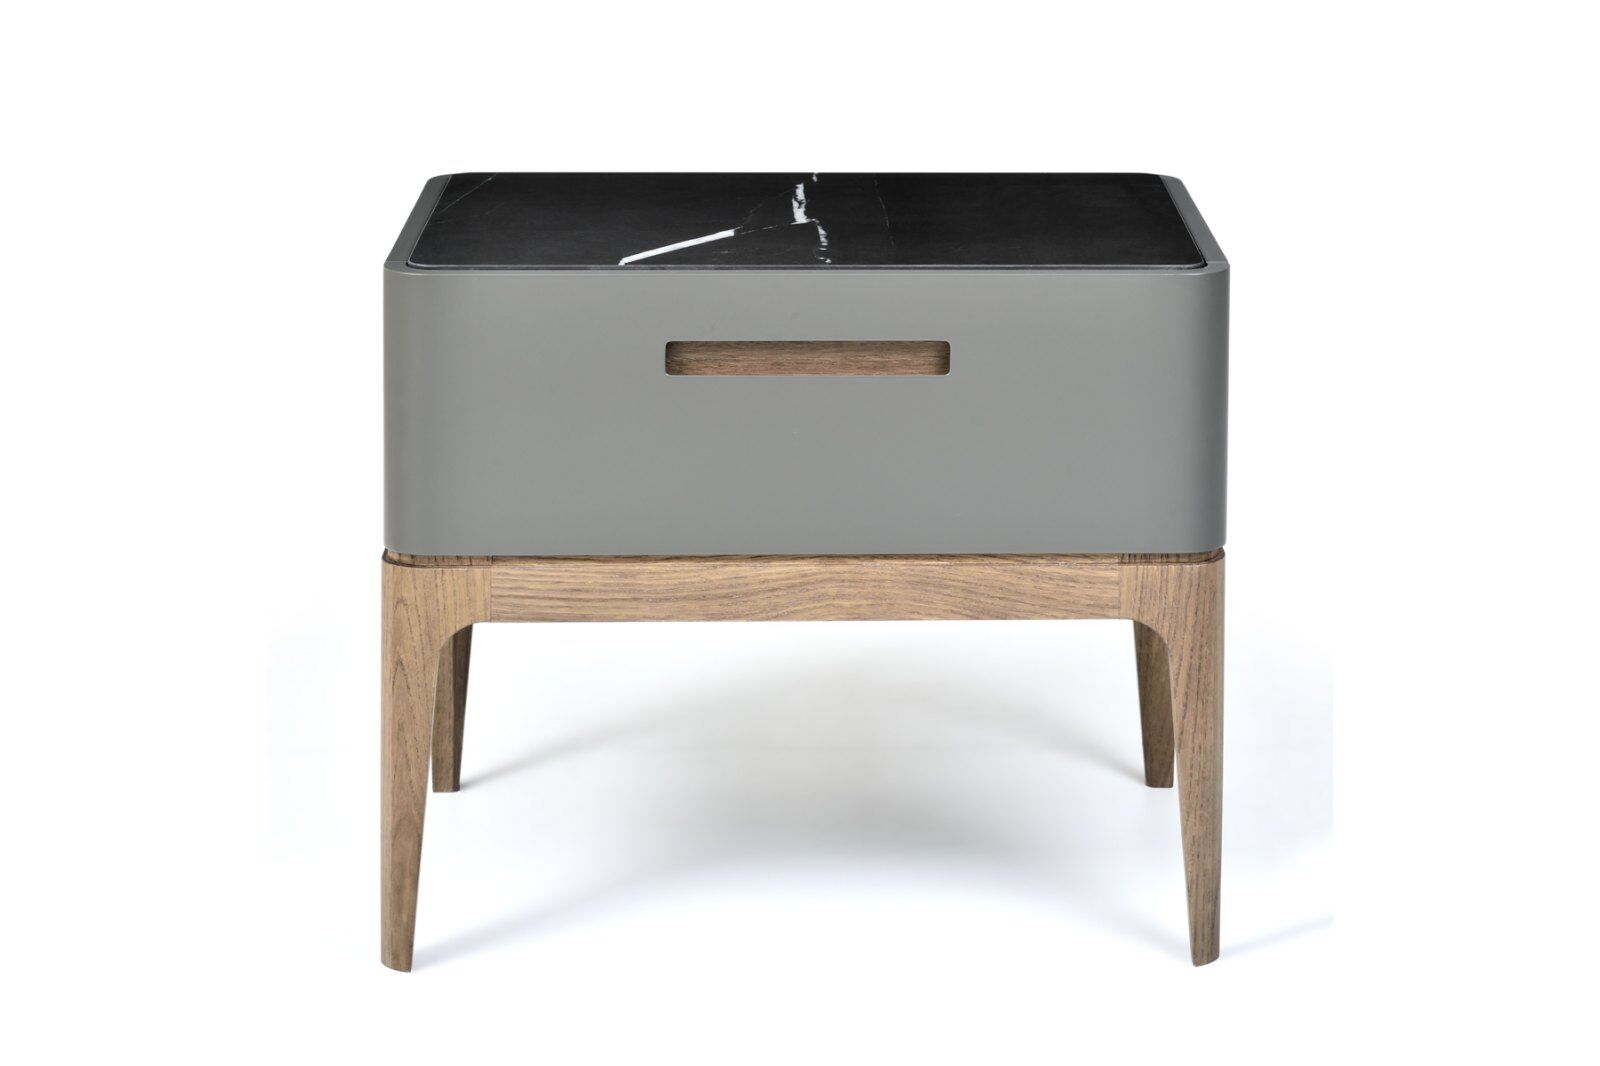 Eclipse Marble-effect Ceramic Top Bedside Table 60cm / 1